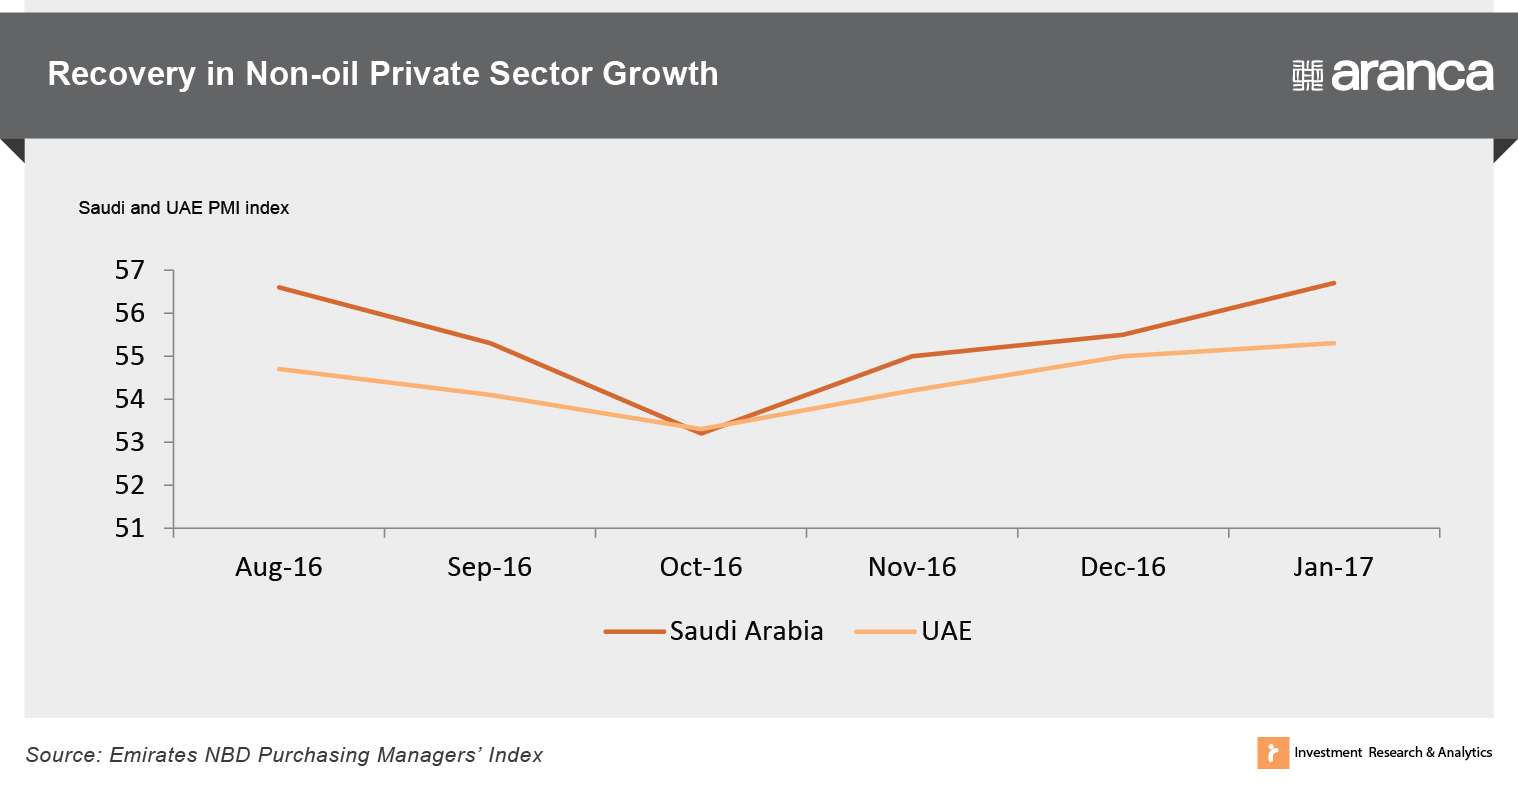 Recovery in Non-Oil Private Sector Growth